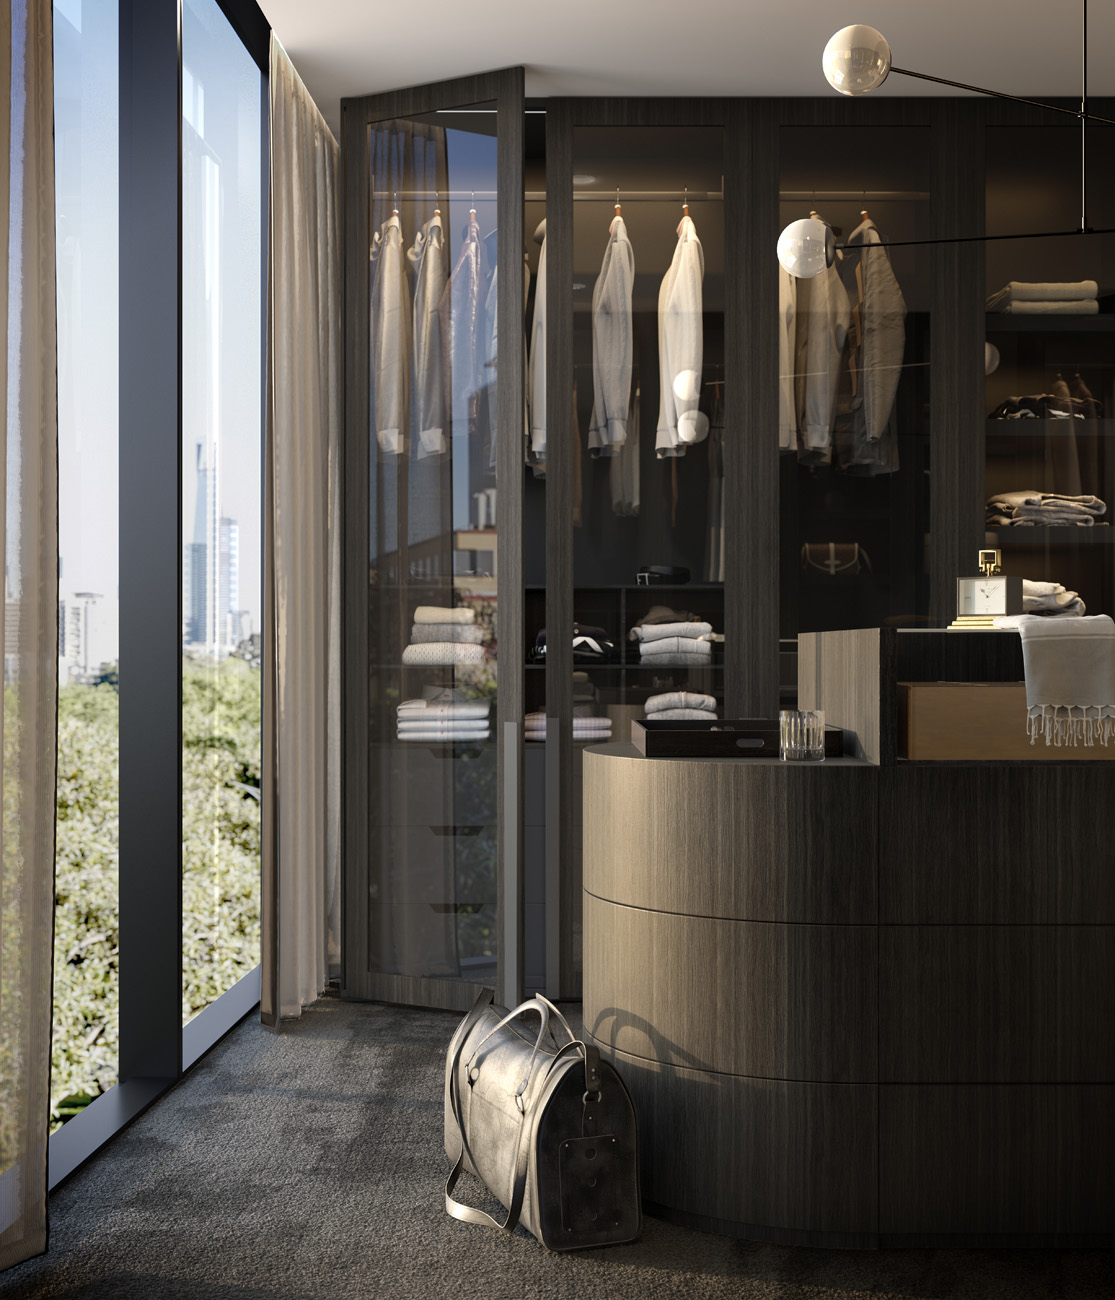 The-Muse-apartment-living-image-photography-3d-renders-FKD-studio